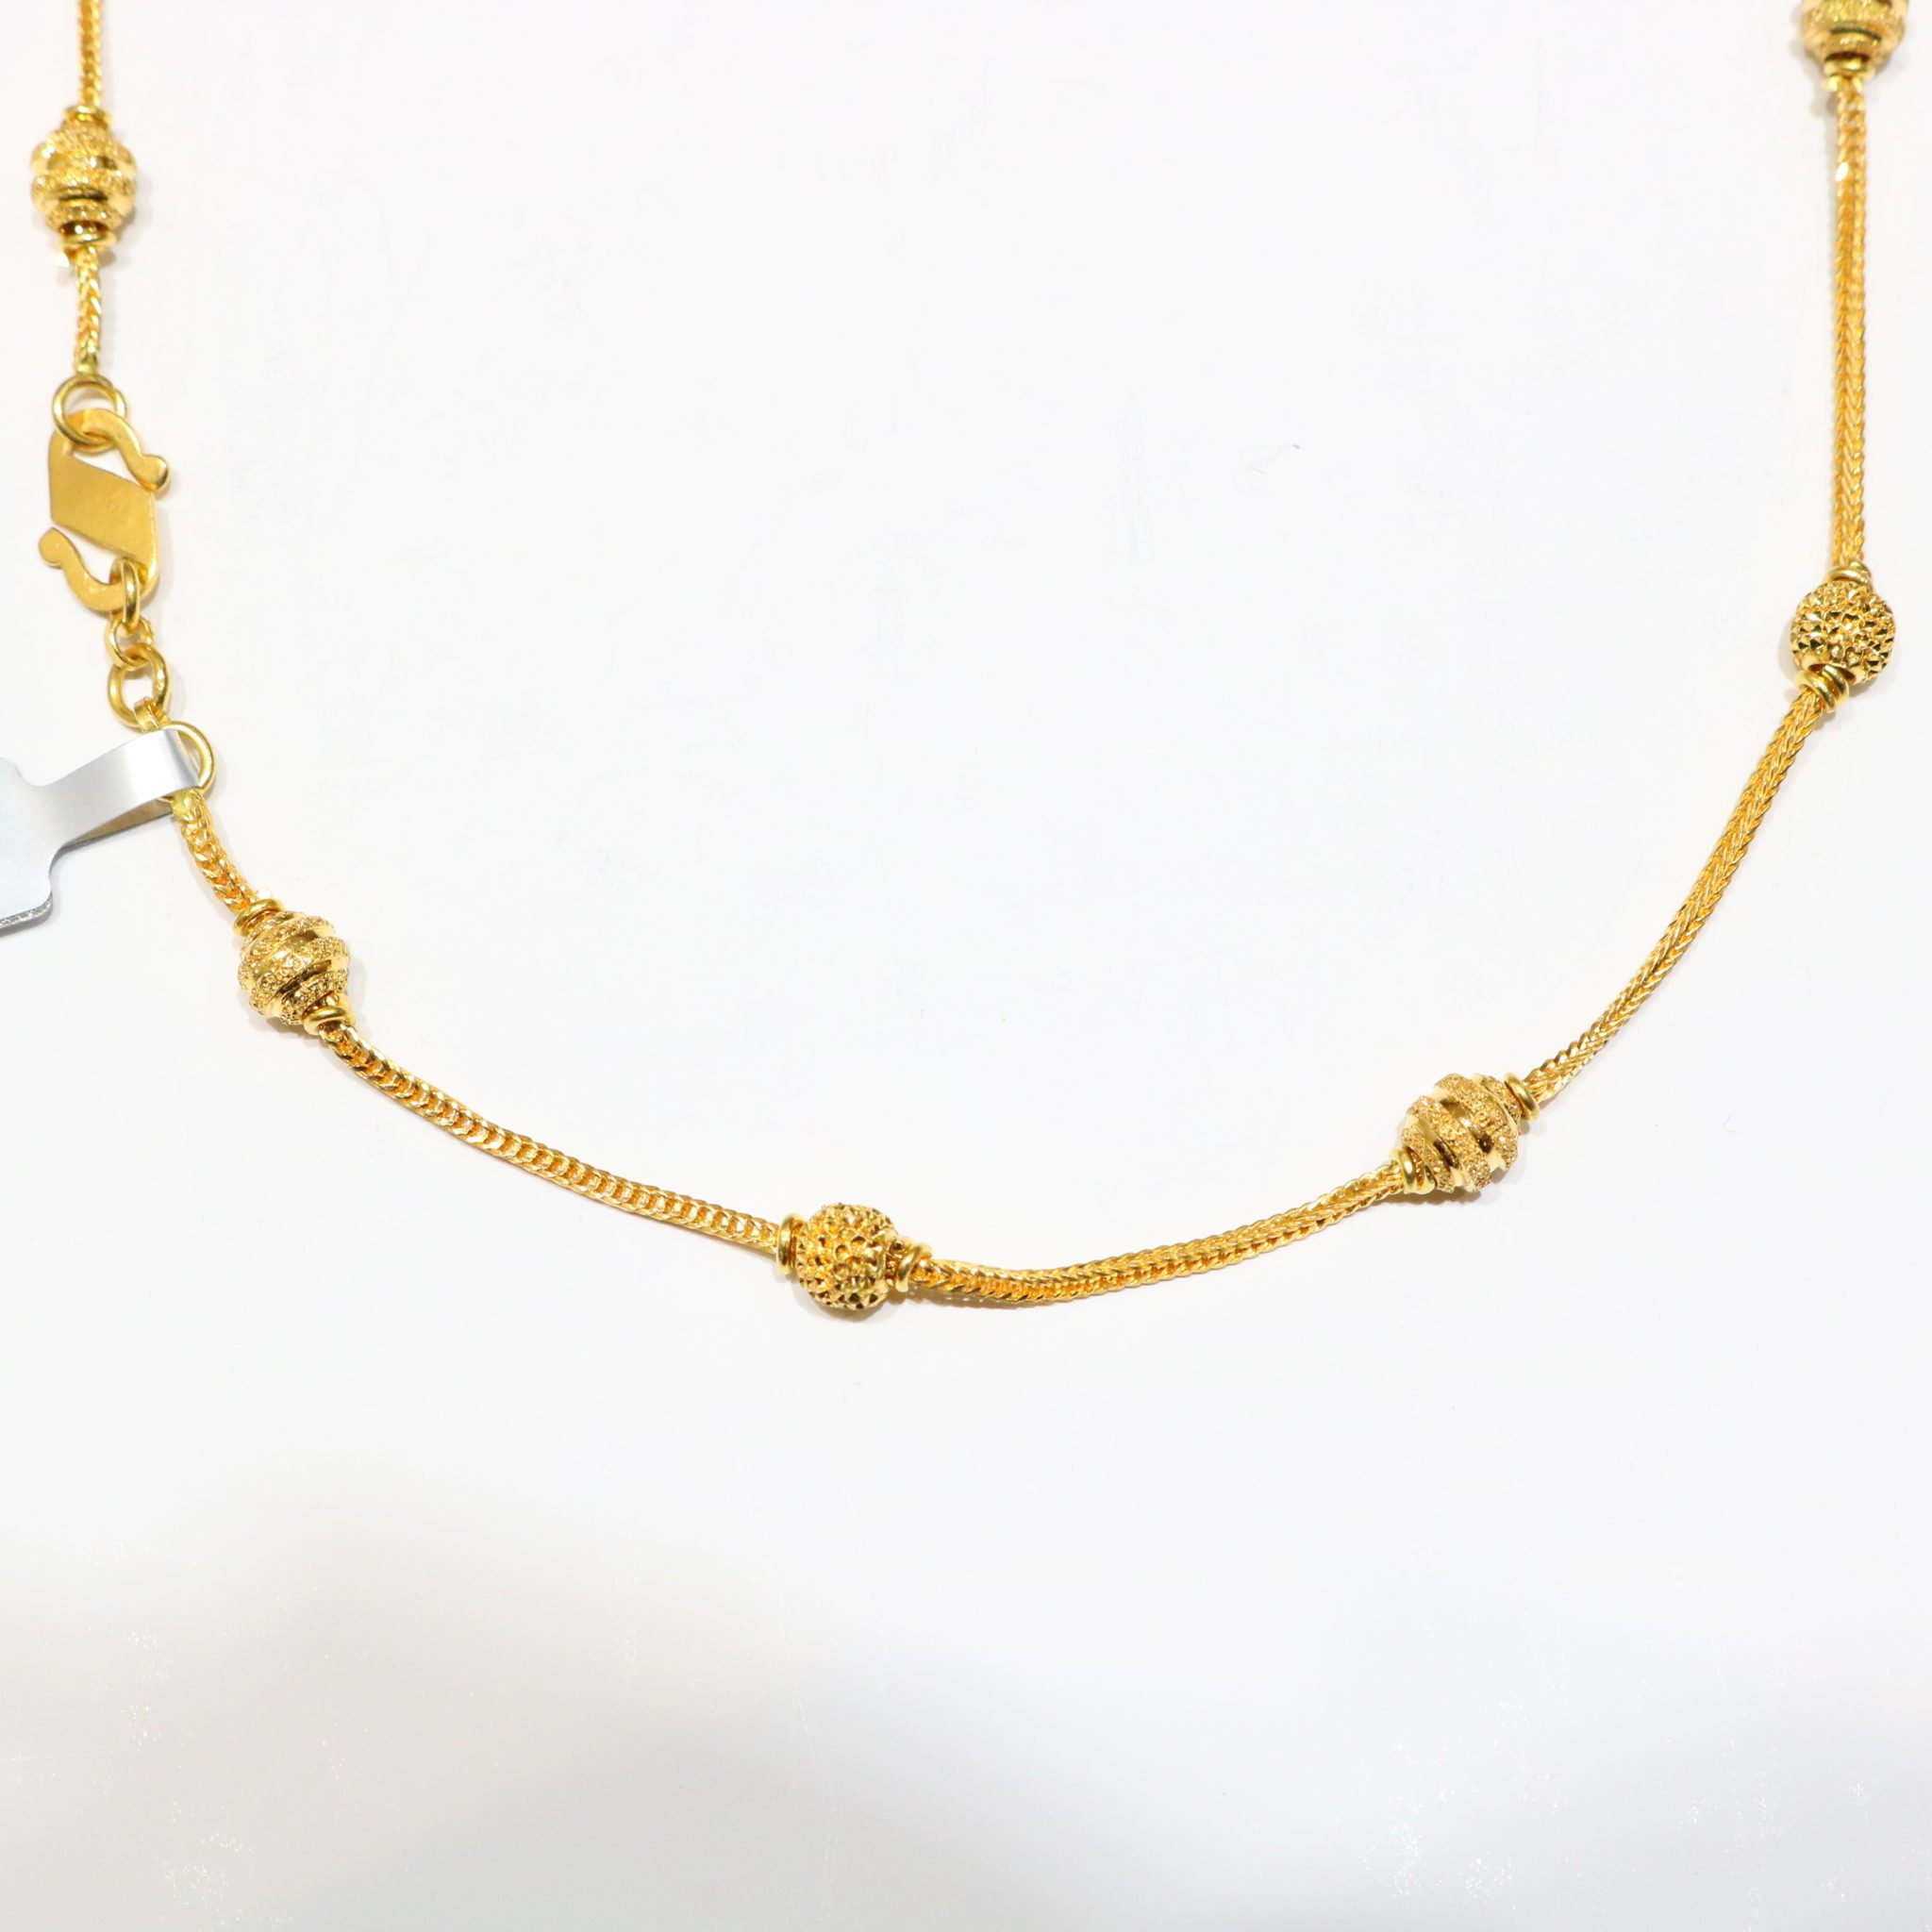 necklace pin men chains yellow spiga chain gold